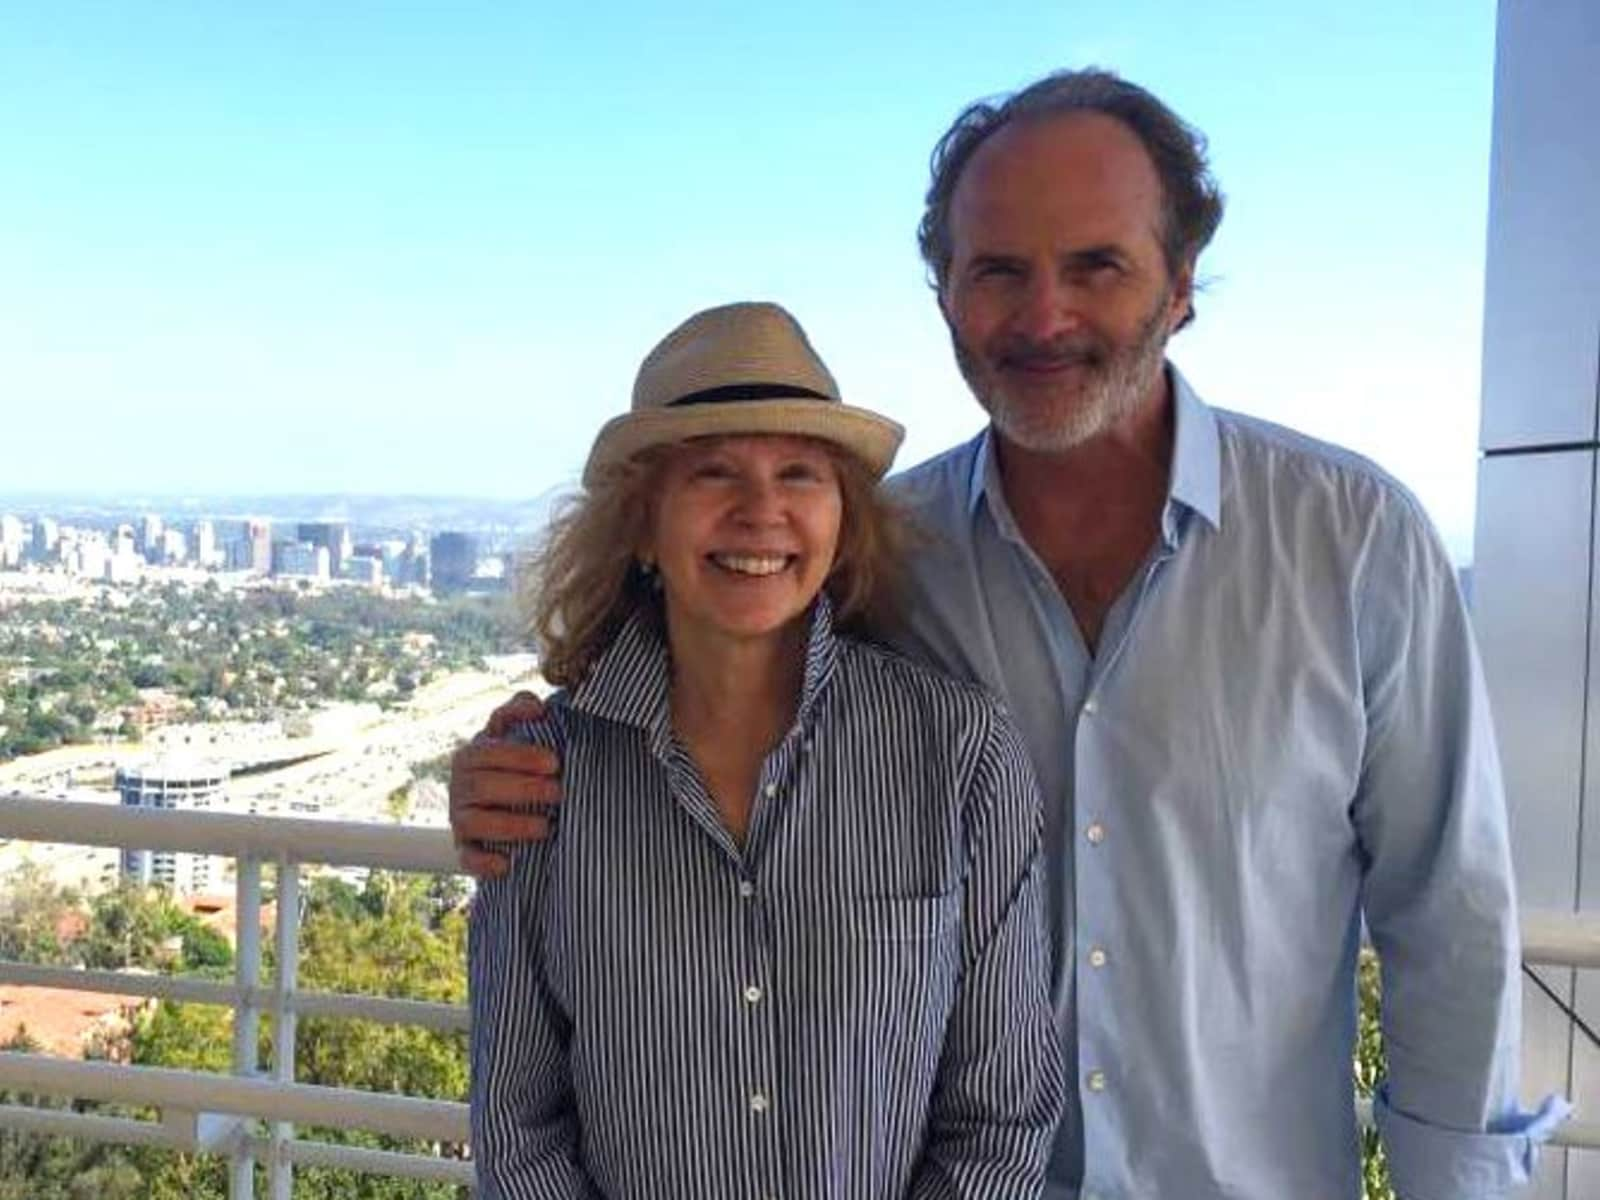 Nancy & Michael from Los Angeles, California, United States